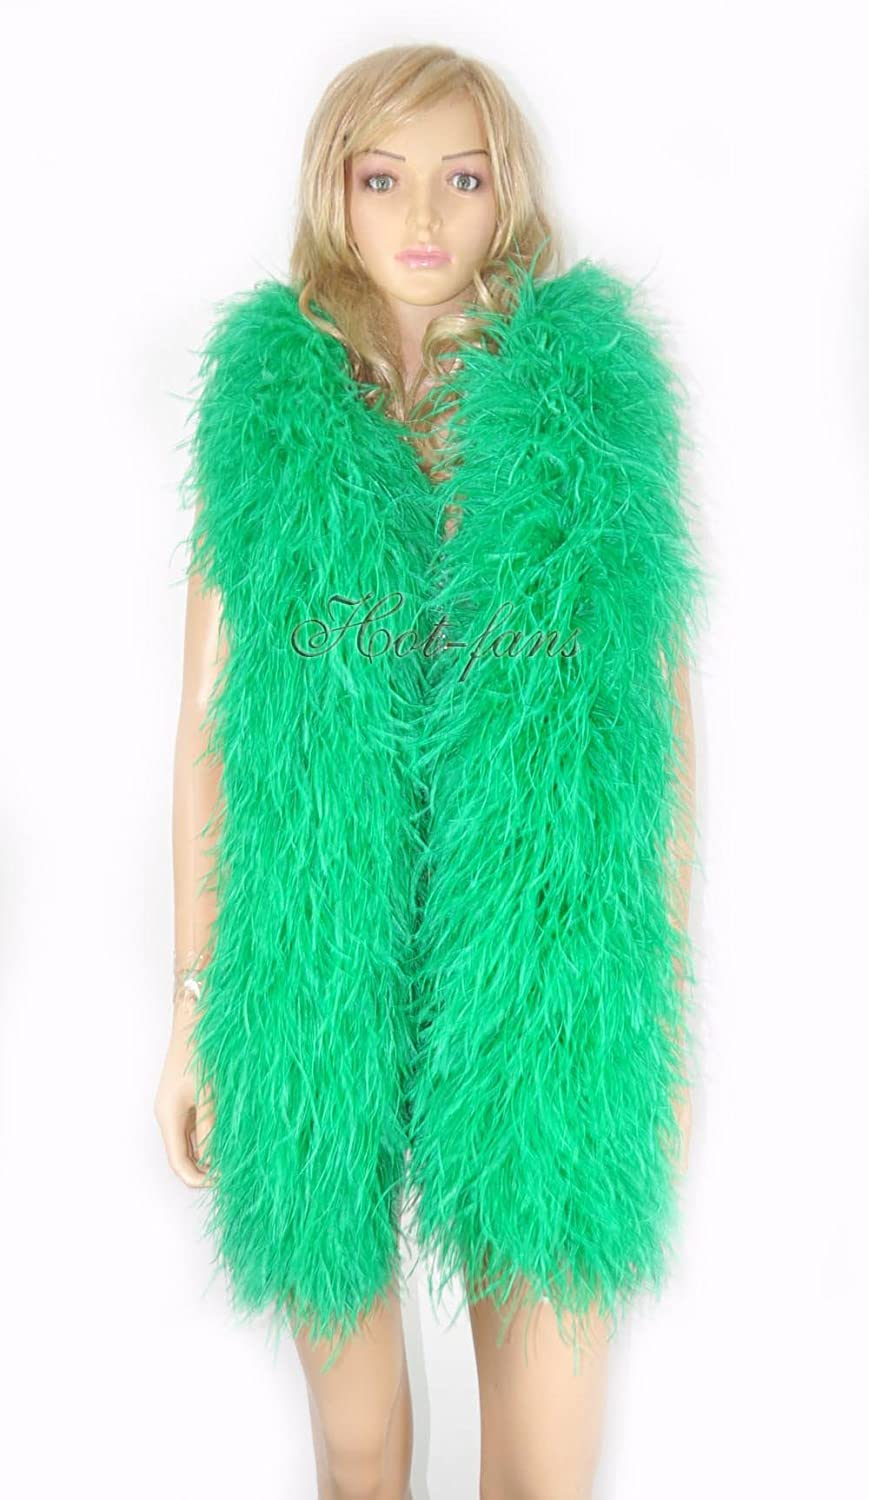 20 ply emerald green Luxury Ostrich Feather 71